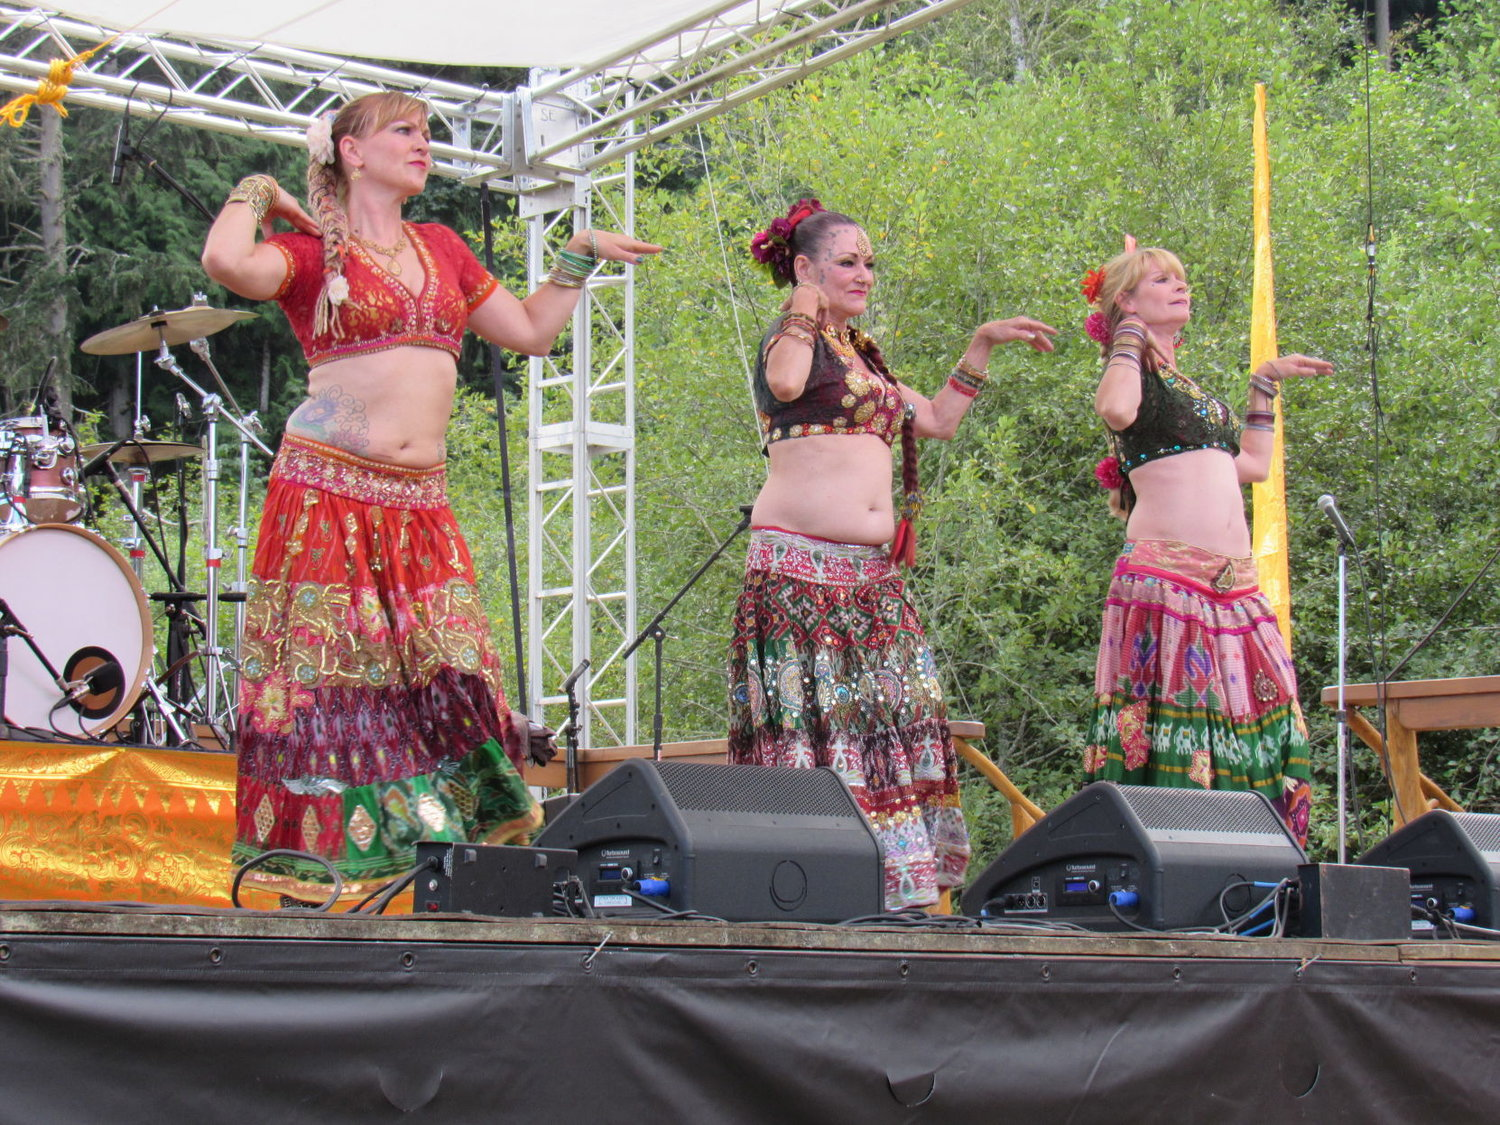 Traveling from Port Angeles to Quilcene, the Shula Azhar belly dancers showed their moves. Leader photos by Jimmy Hall